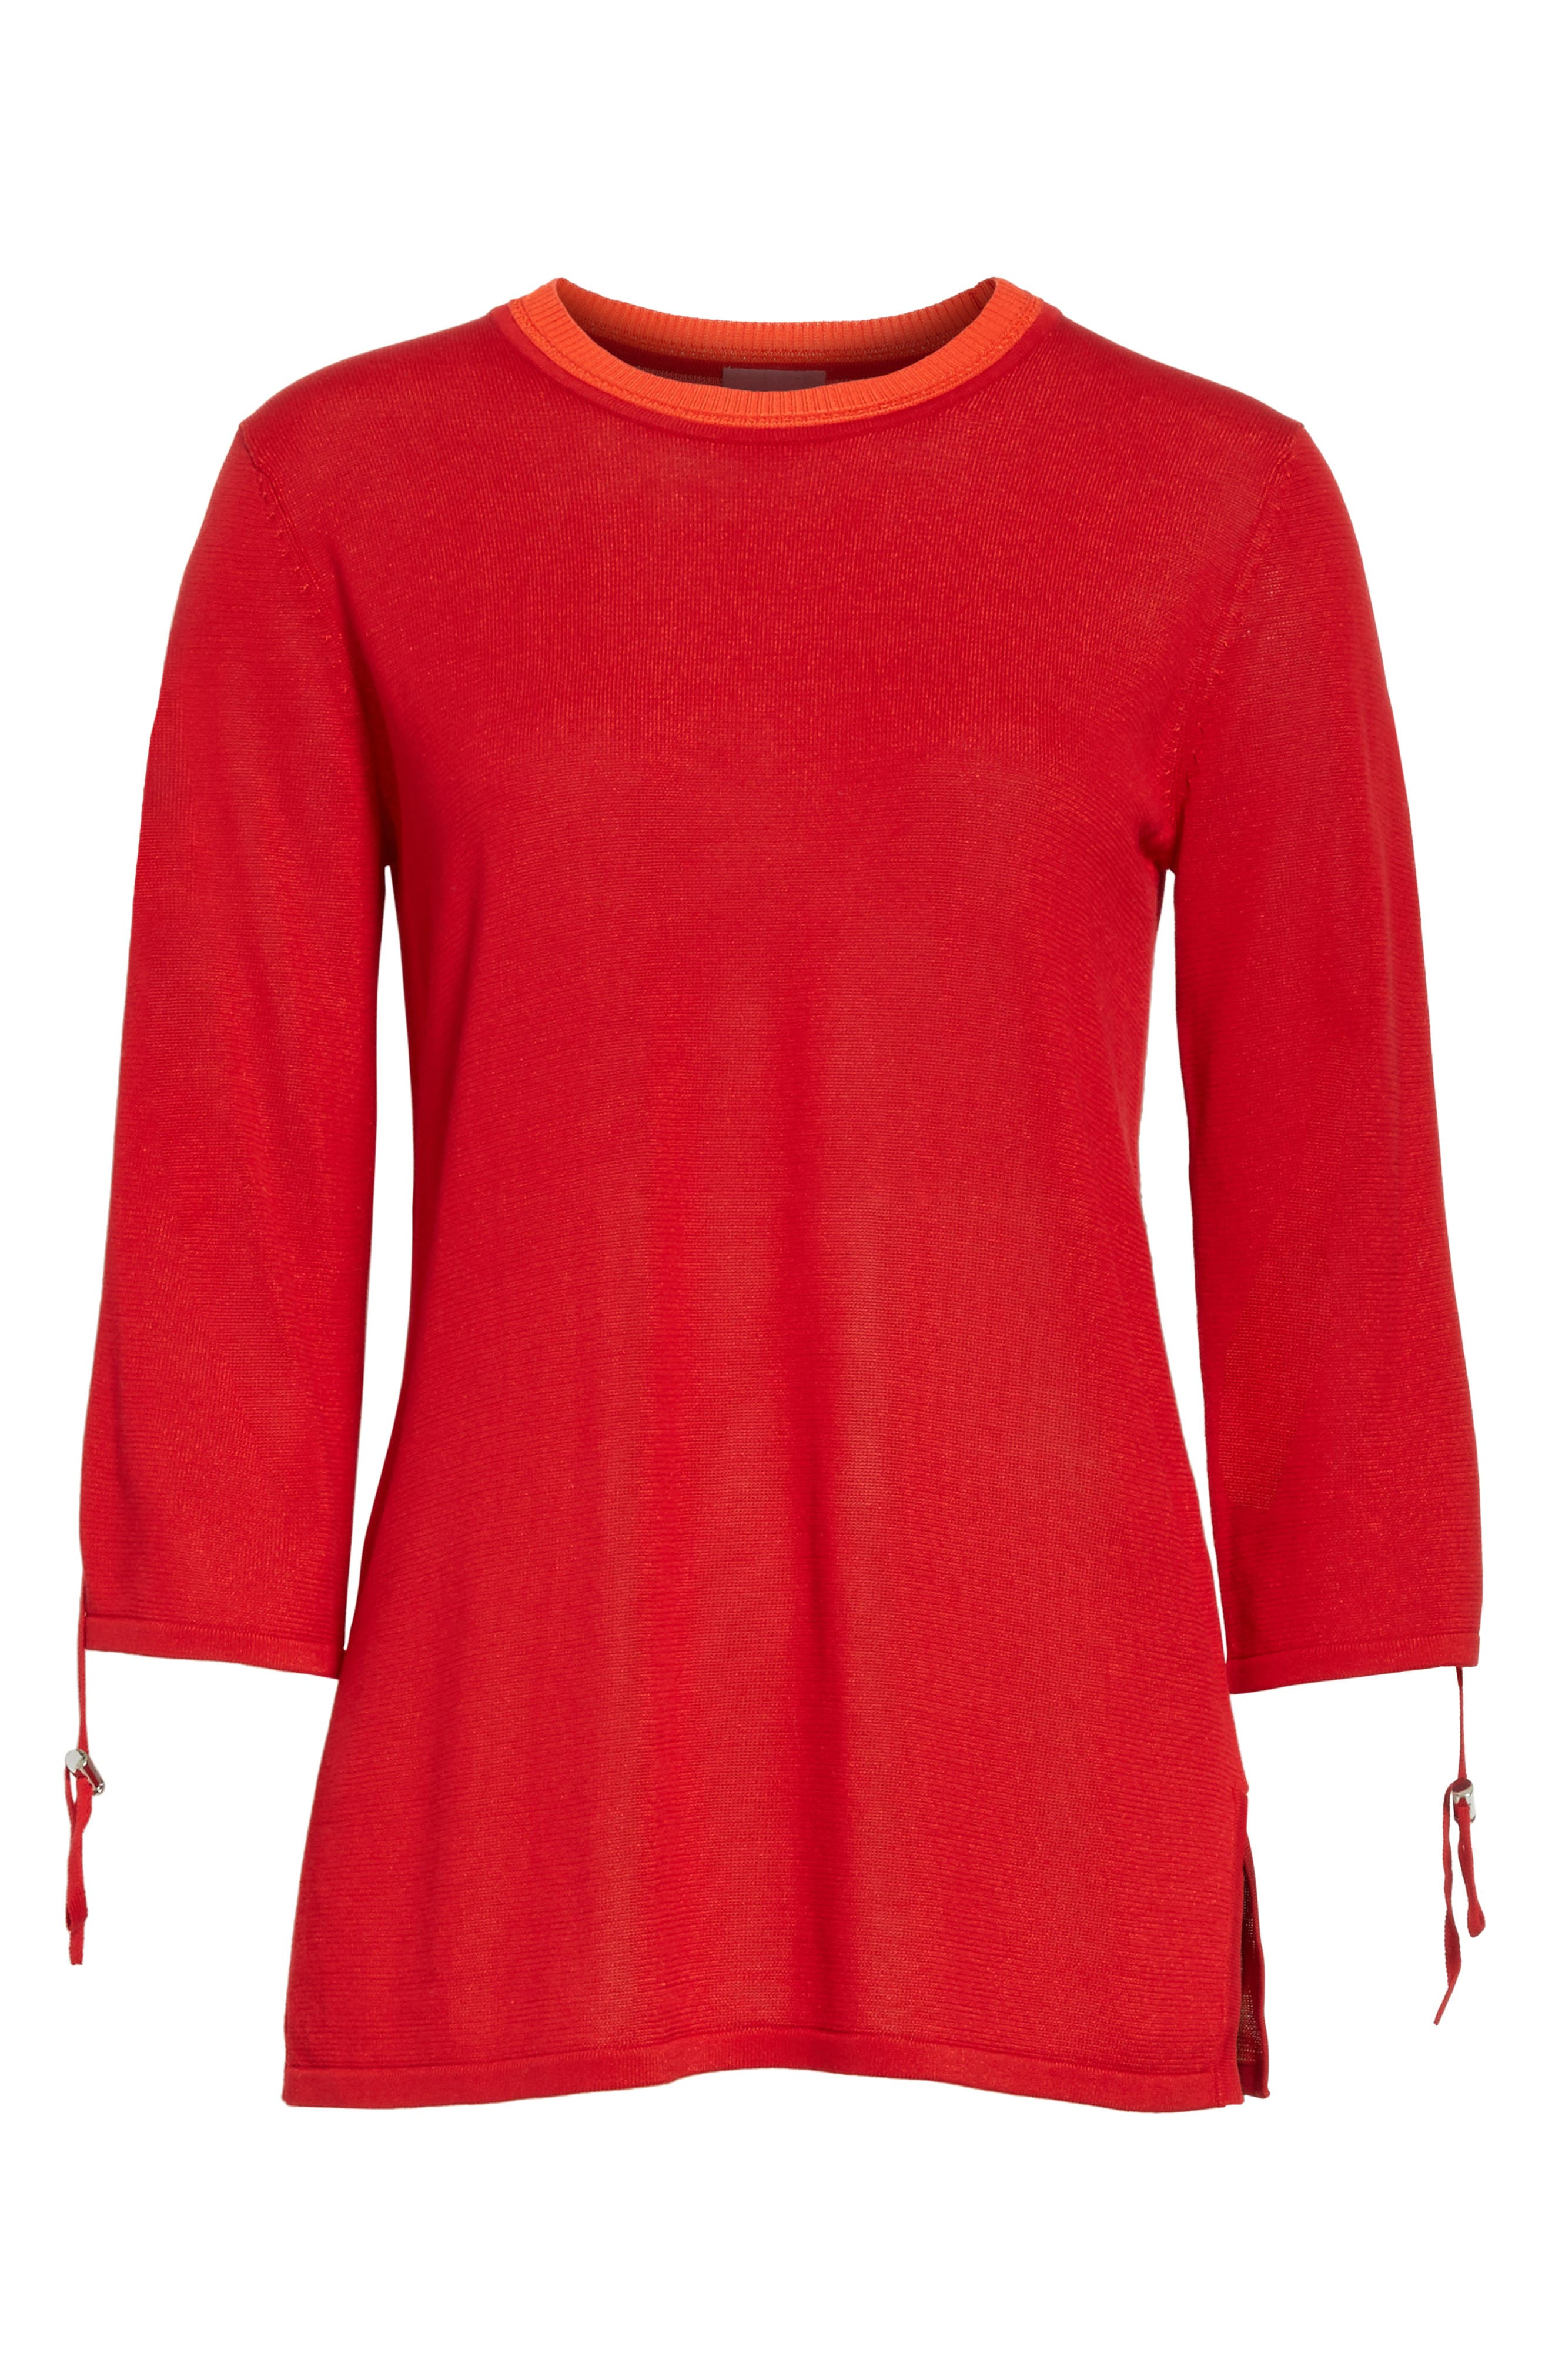 Ruched Sleeve Sweater,                             Alternate thumbnail 6, color,                             632